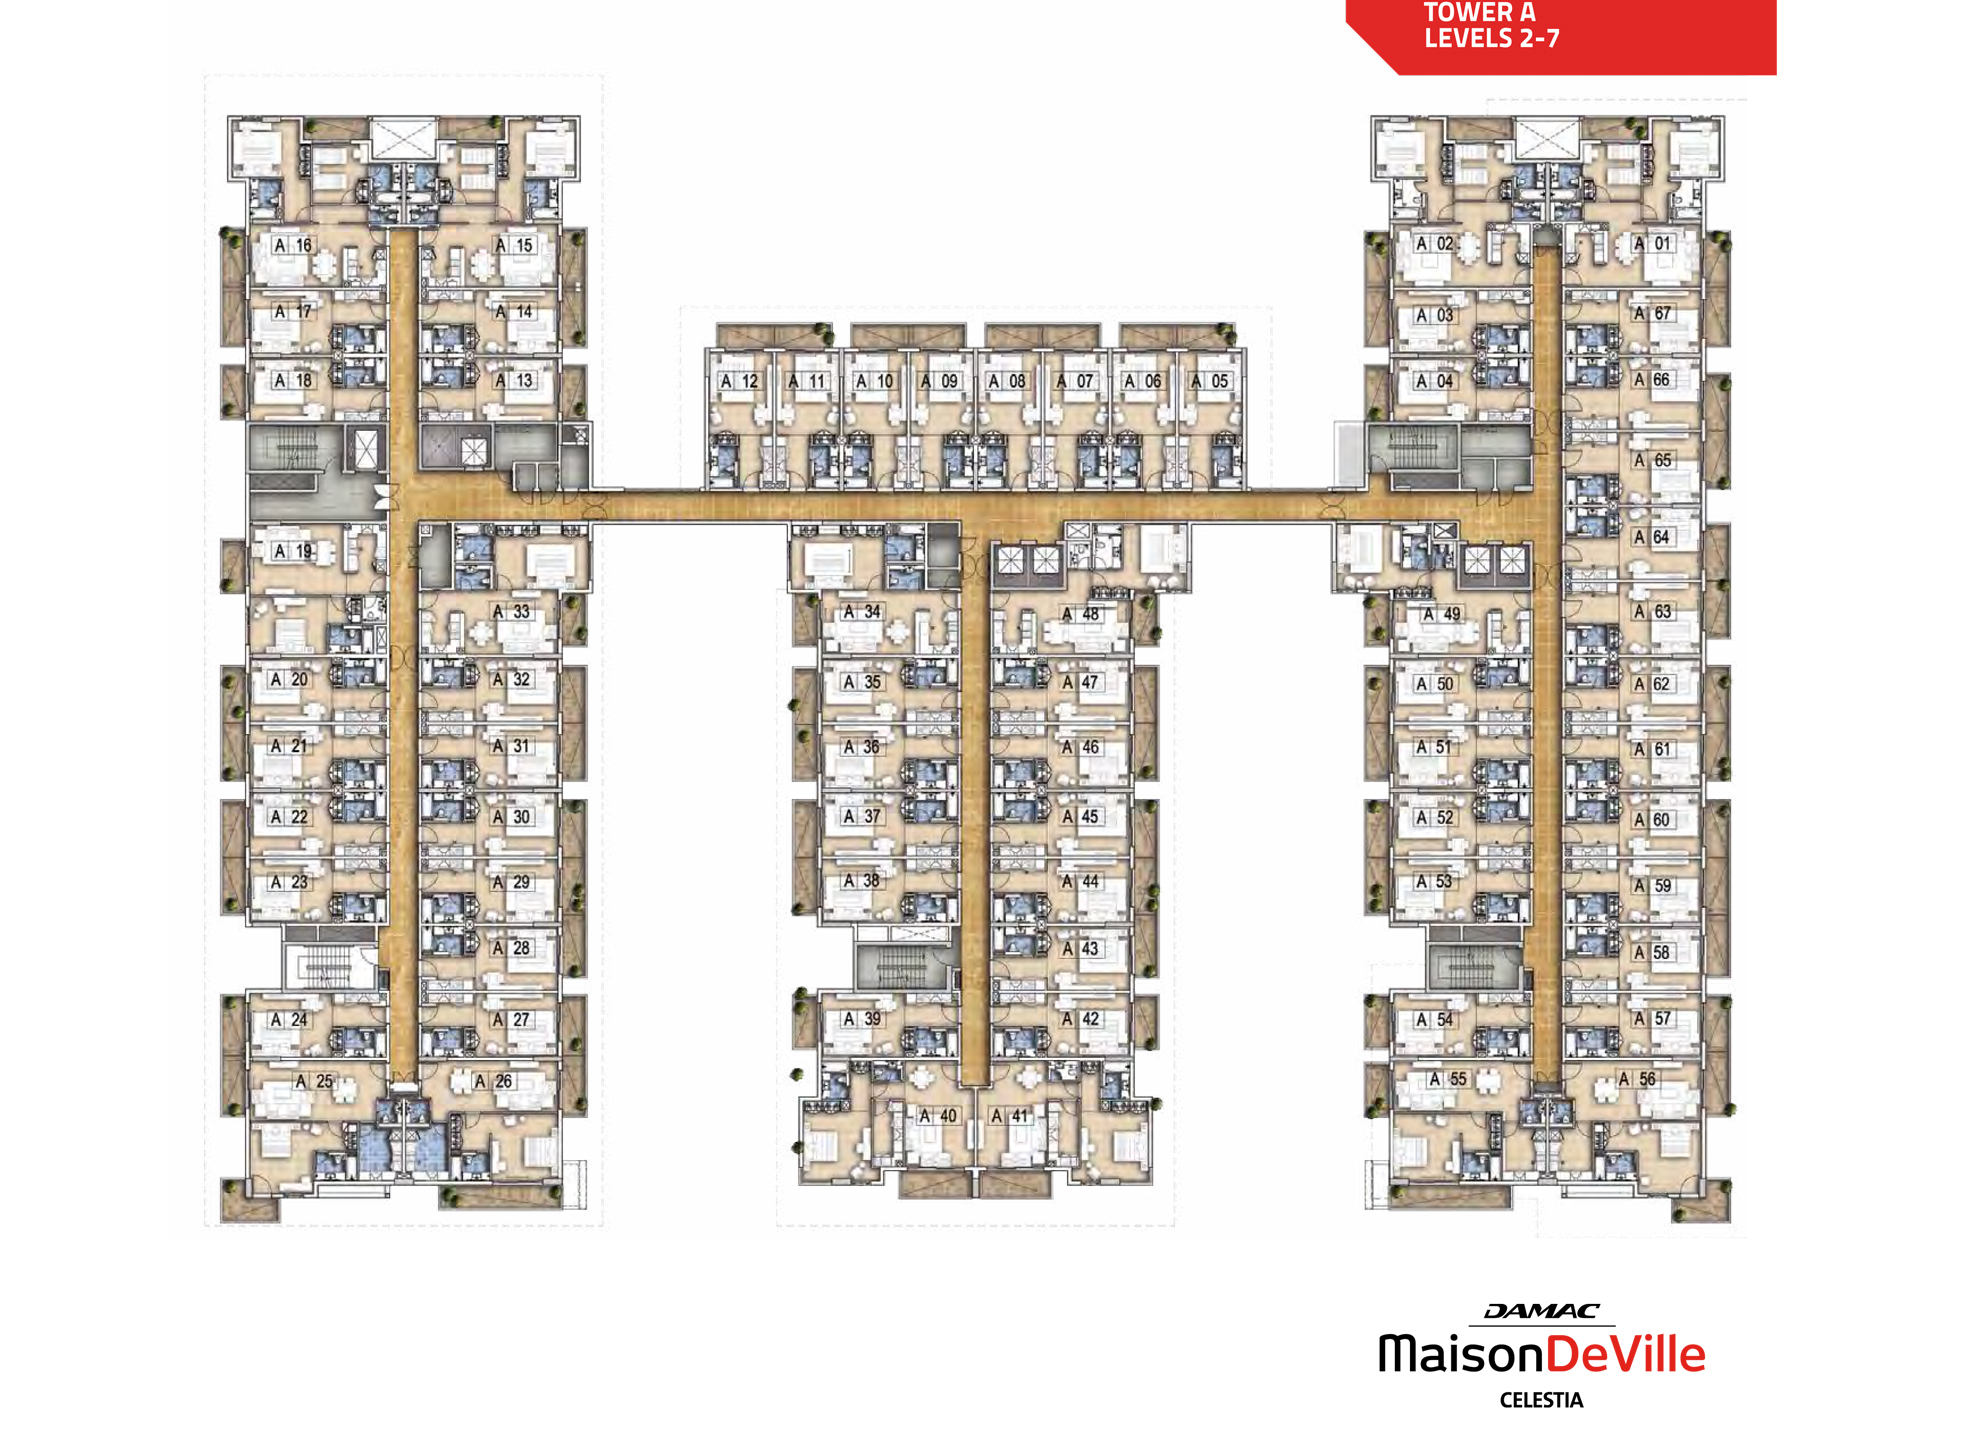 TYPICAL-FLOOR-PLAN-TOWER-A-LEVEL-2-7